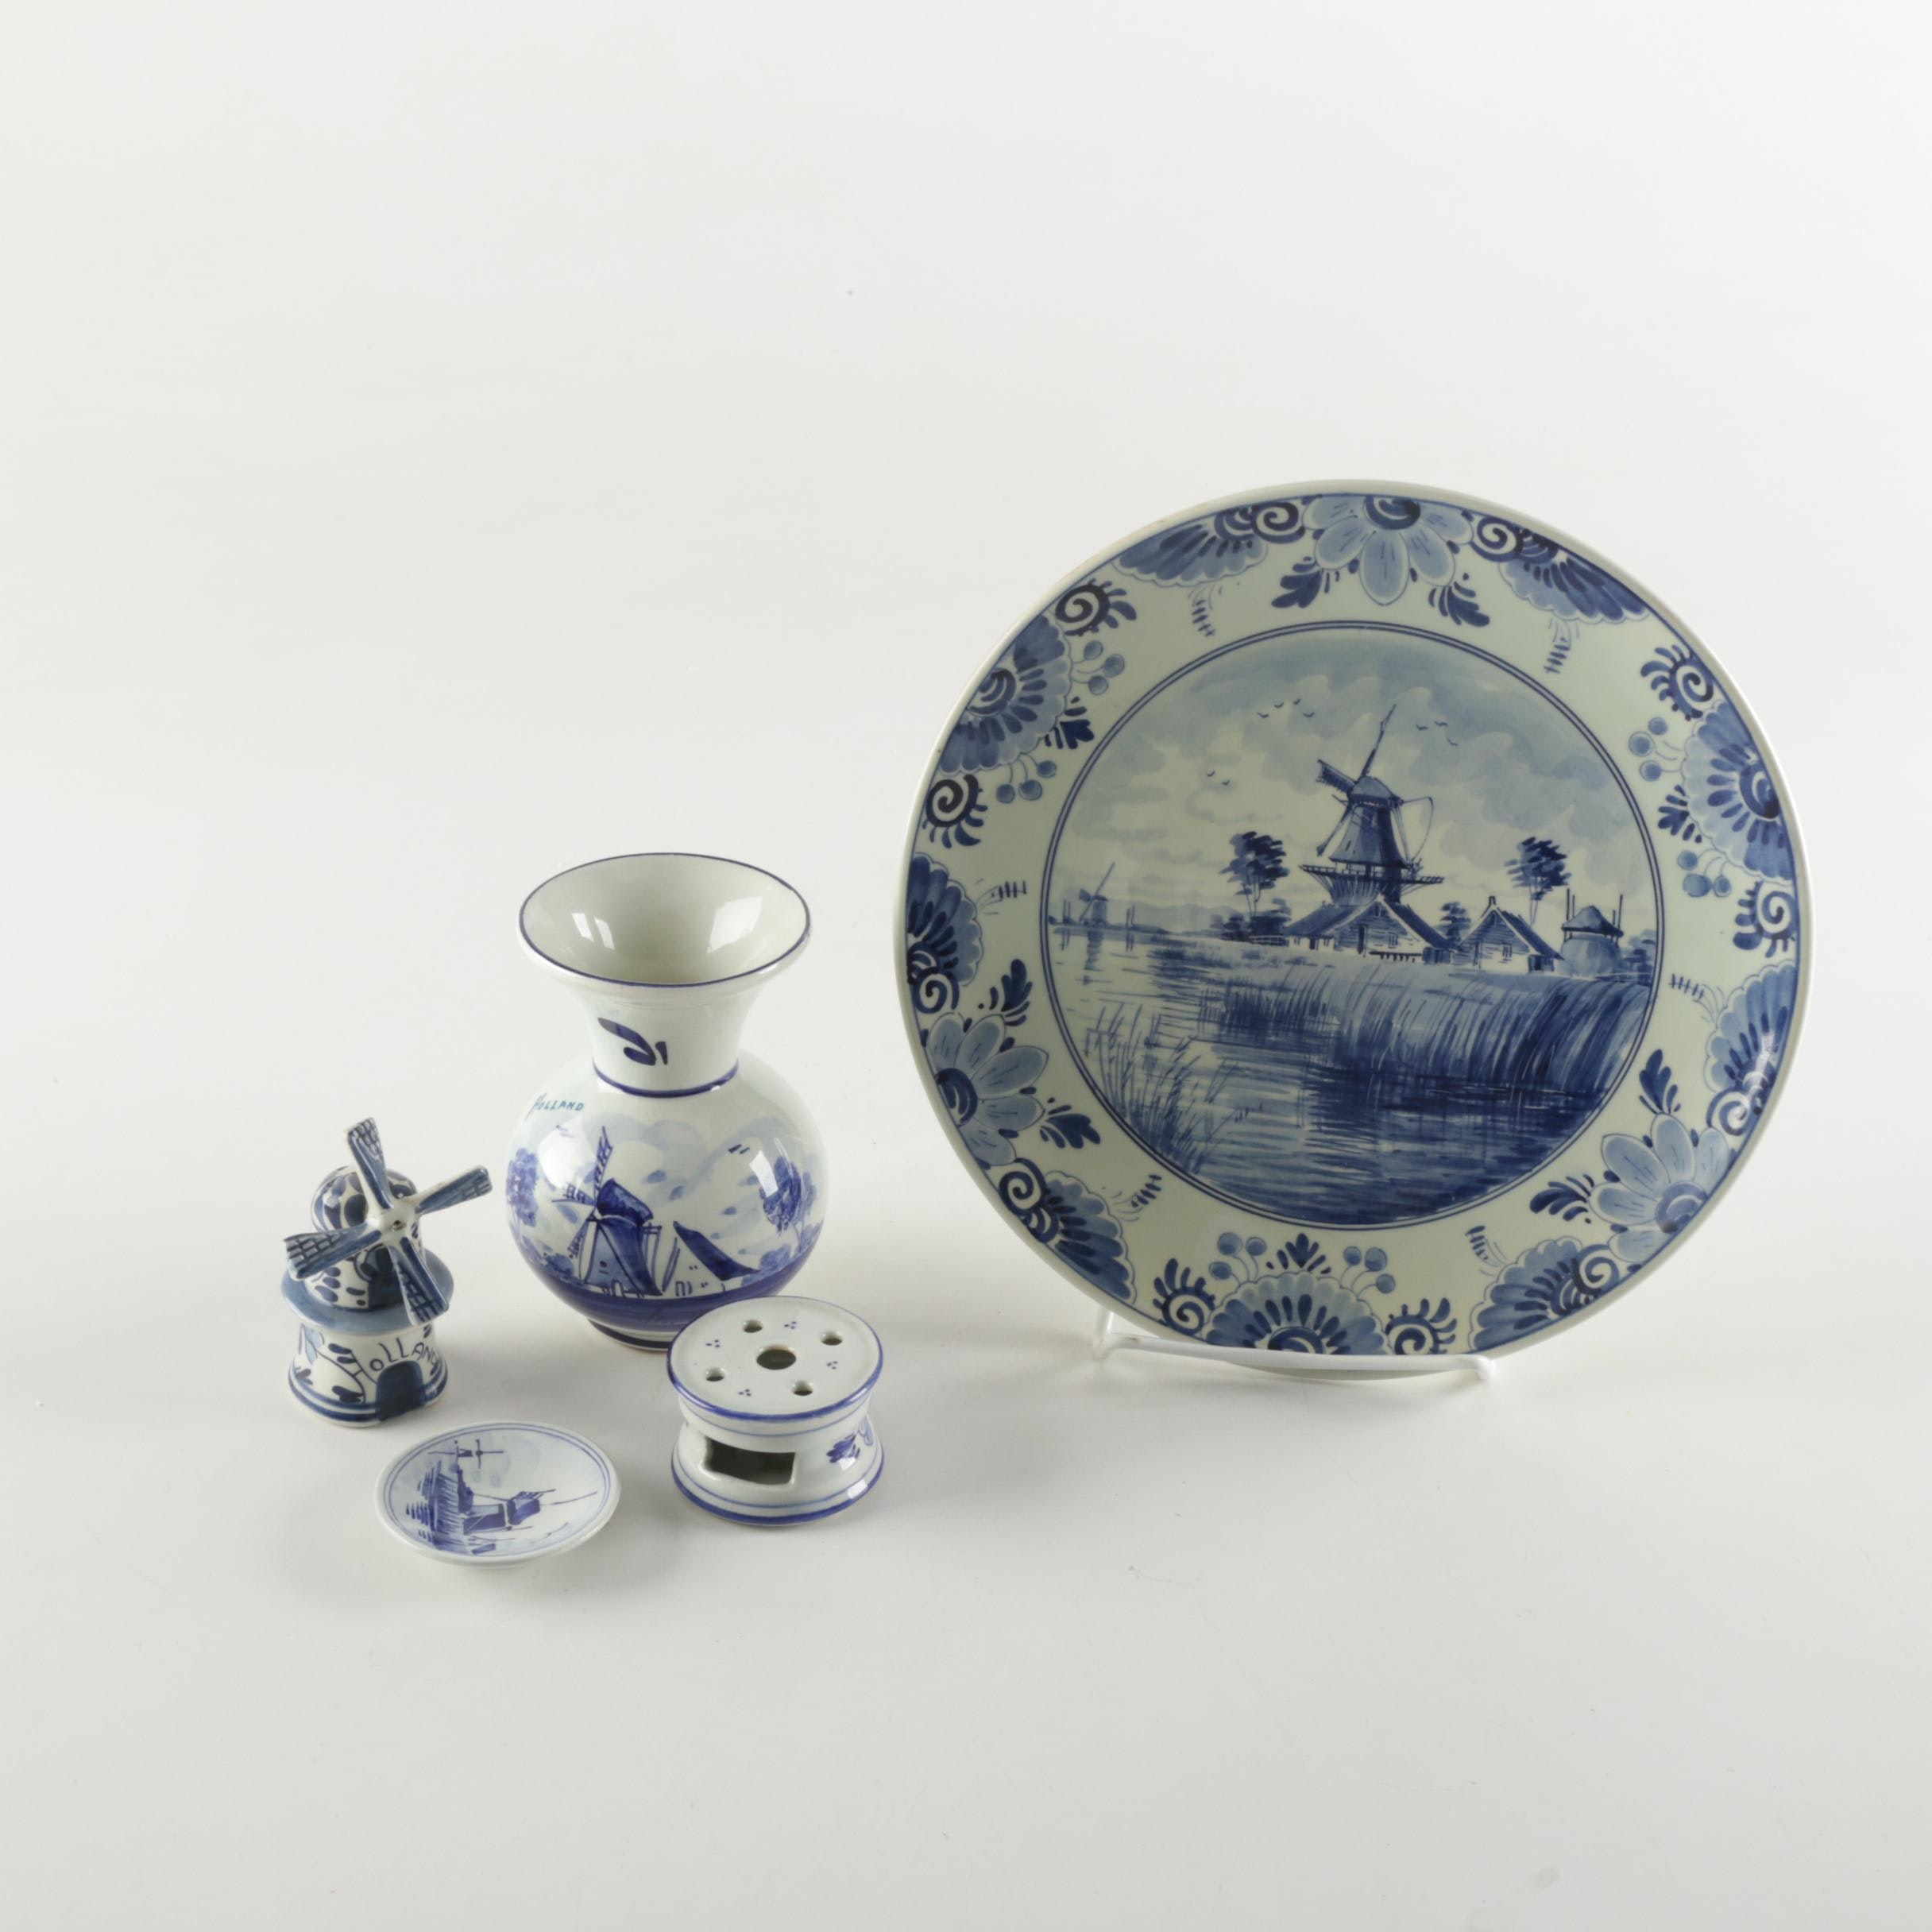 Collection of Delftware